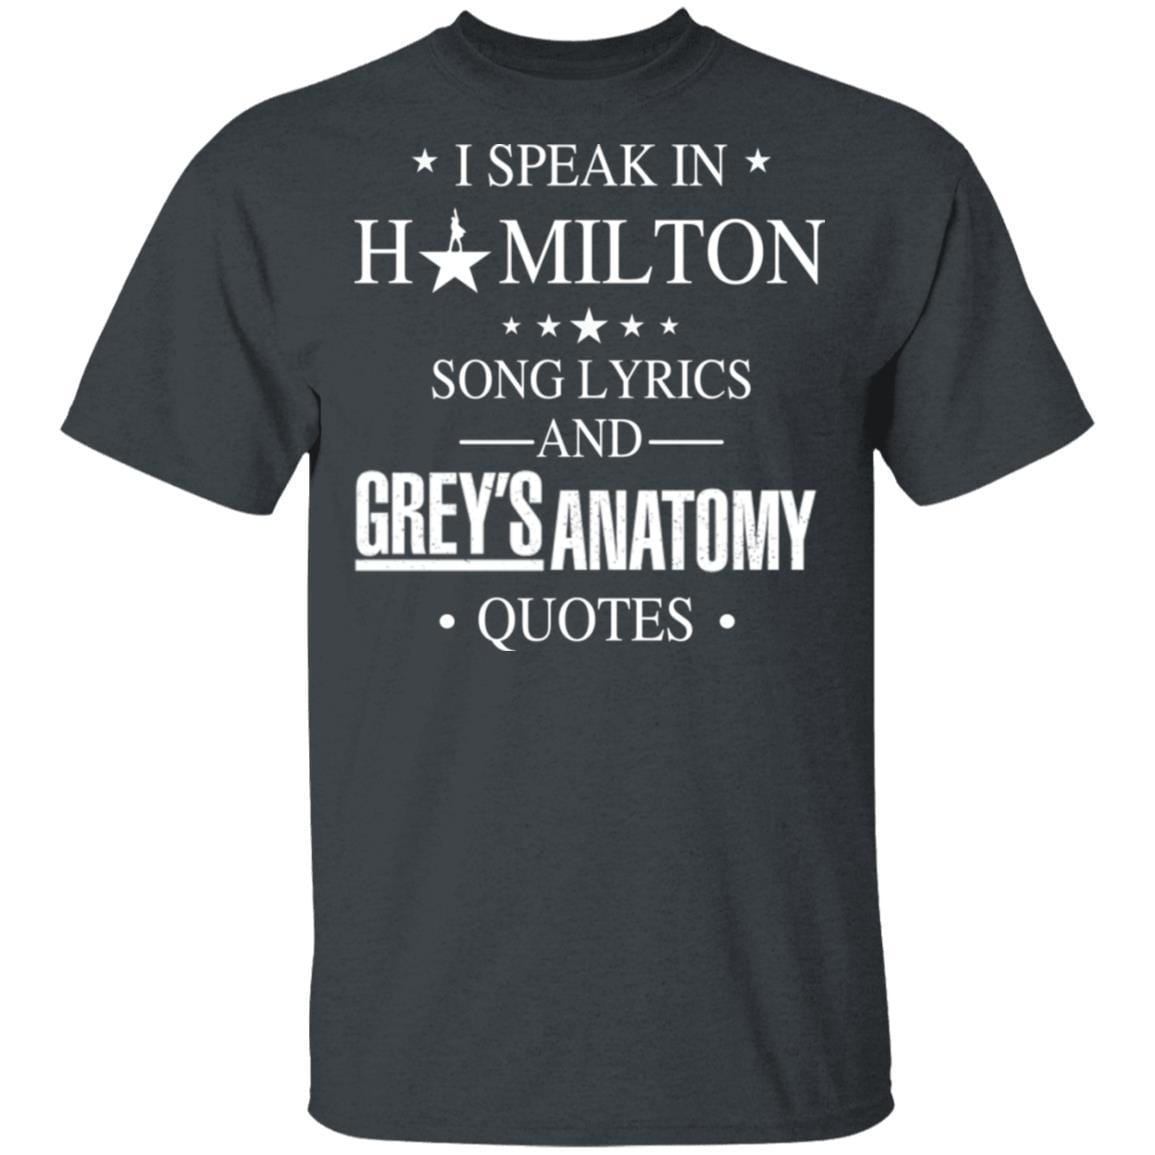 I Speak In Hamilton Song Lyrics And Grey's Anatomy Quotes T-Shirts, Hoodies 1049-9957-88445038-48192 - Tee Ript